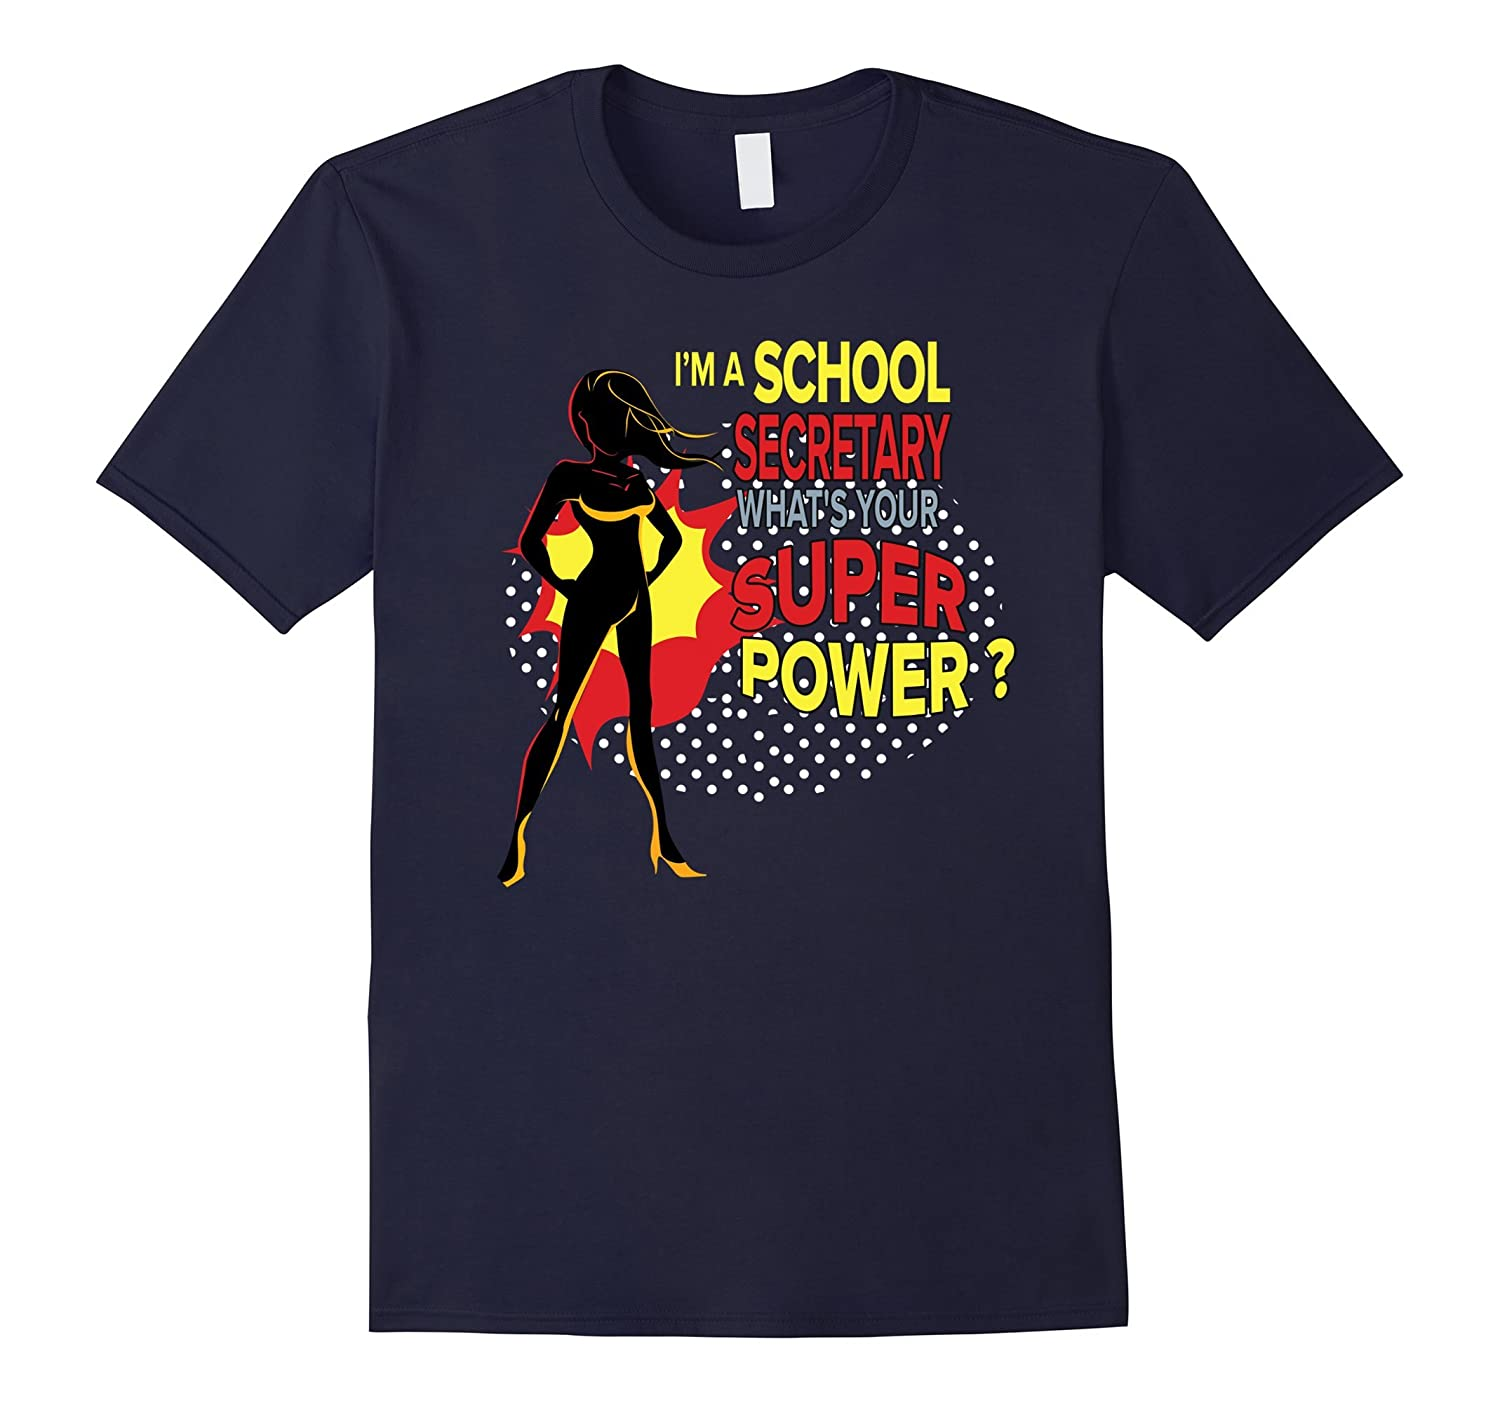 School Secretary T-shirt - Whats your superpower?-TD